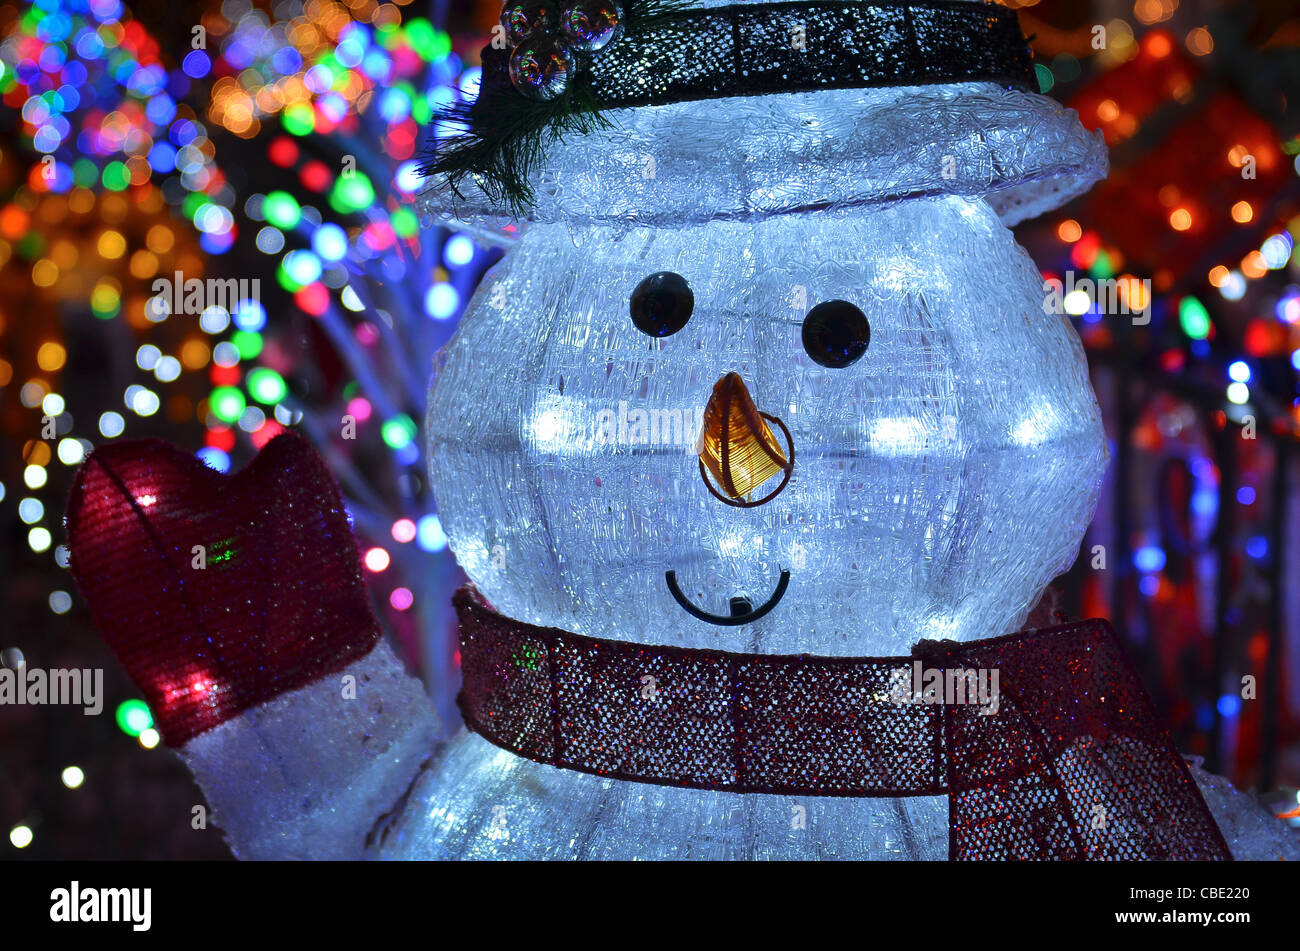 Christmas concept with outdoor snowman lights at night stock photo christmas concept with outdoor snowman lights at night mozeypictures Choice Image